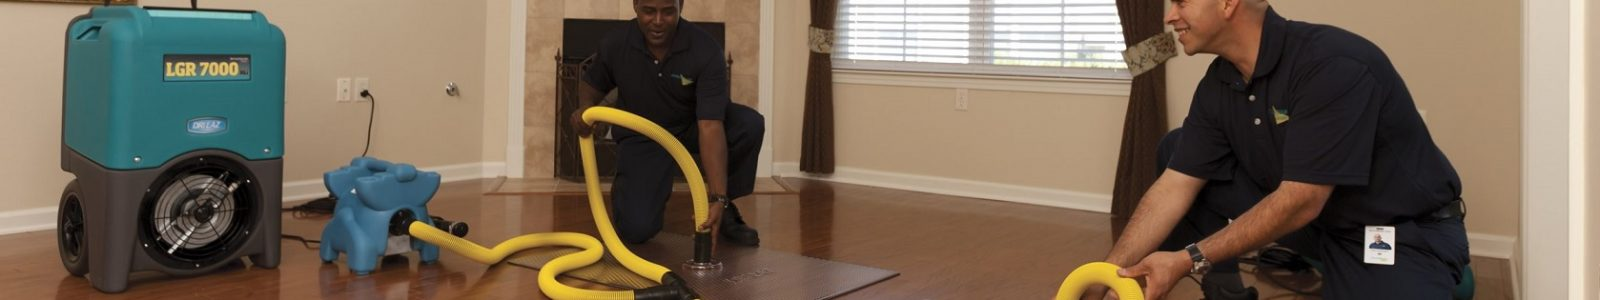 service master by replacements water damage new jersey